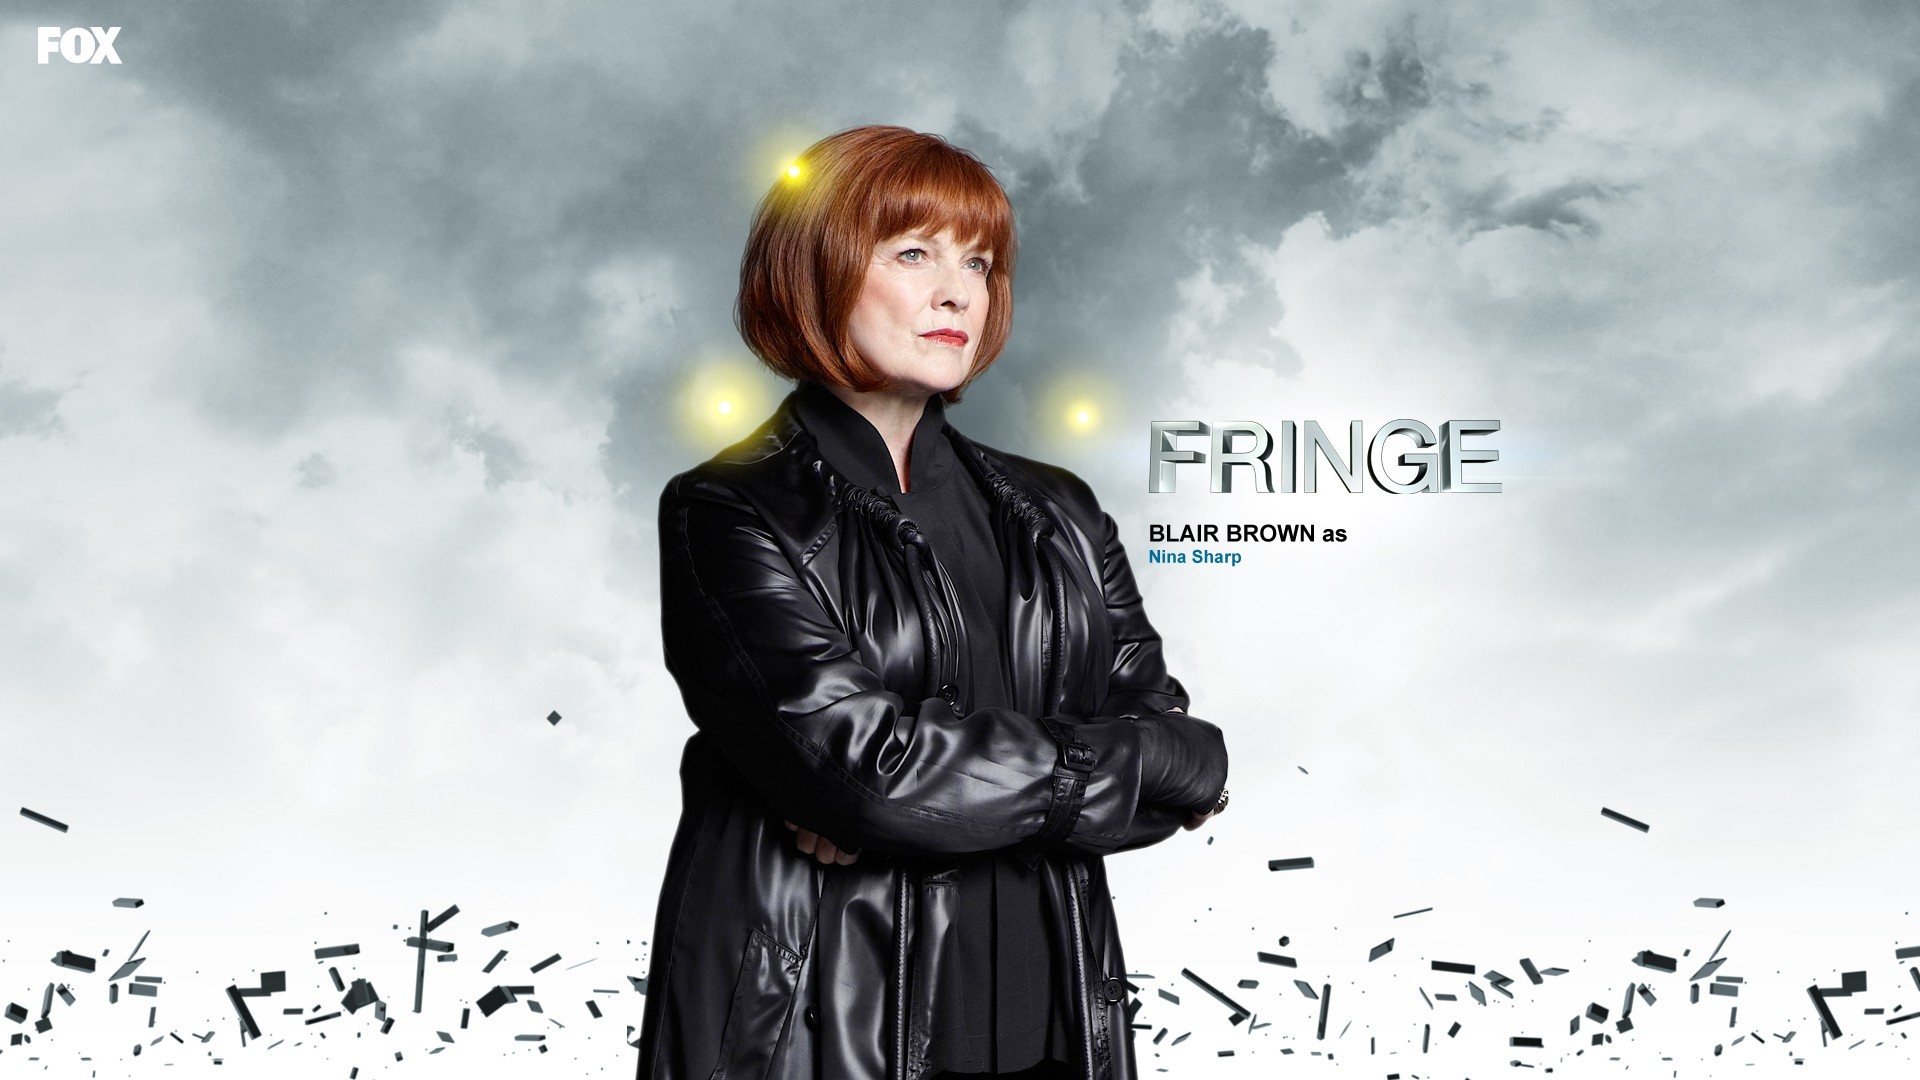 Nina Sharp, the heroine of the series Fringe, managing Massive Dynamics